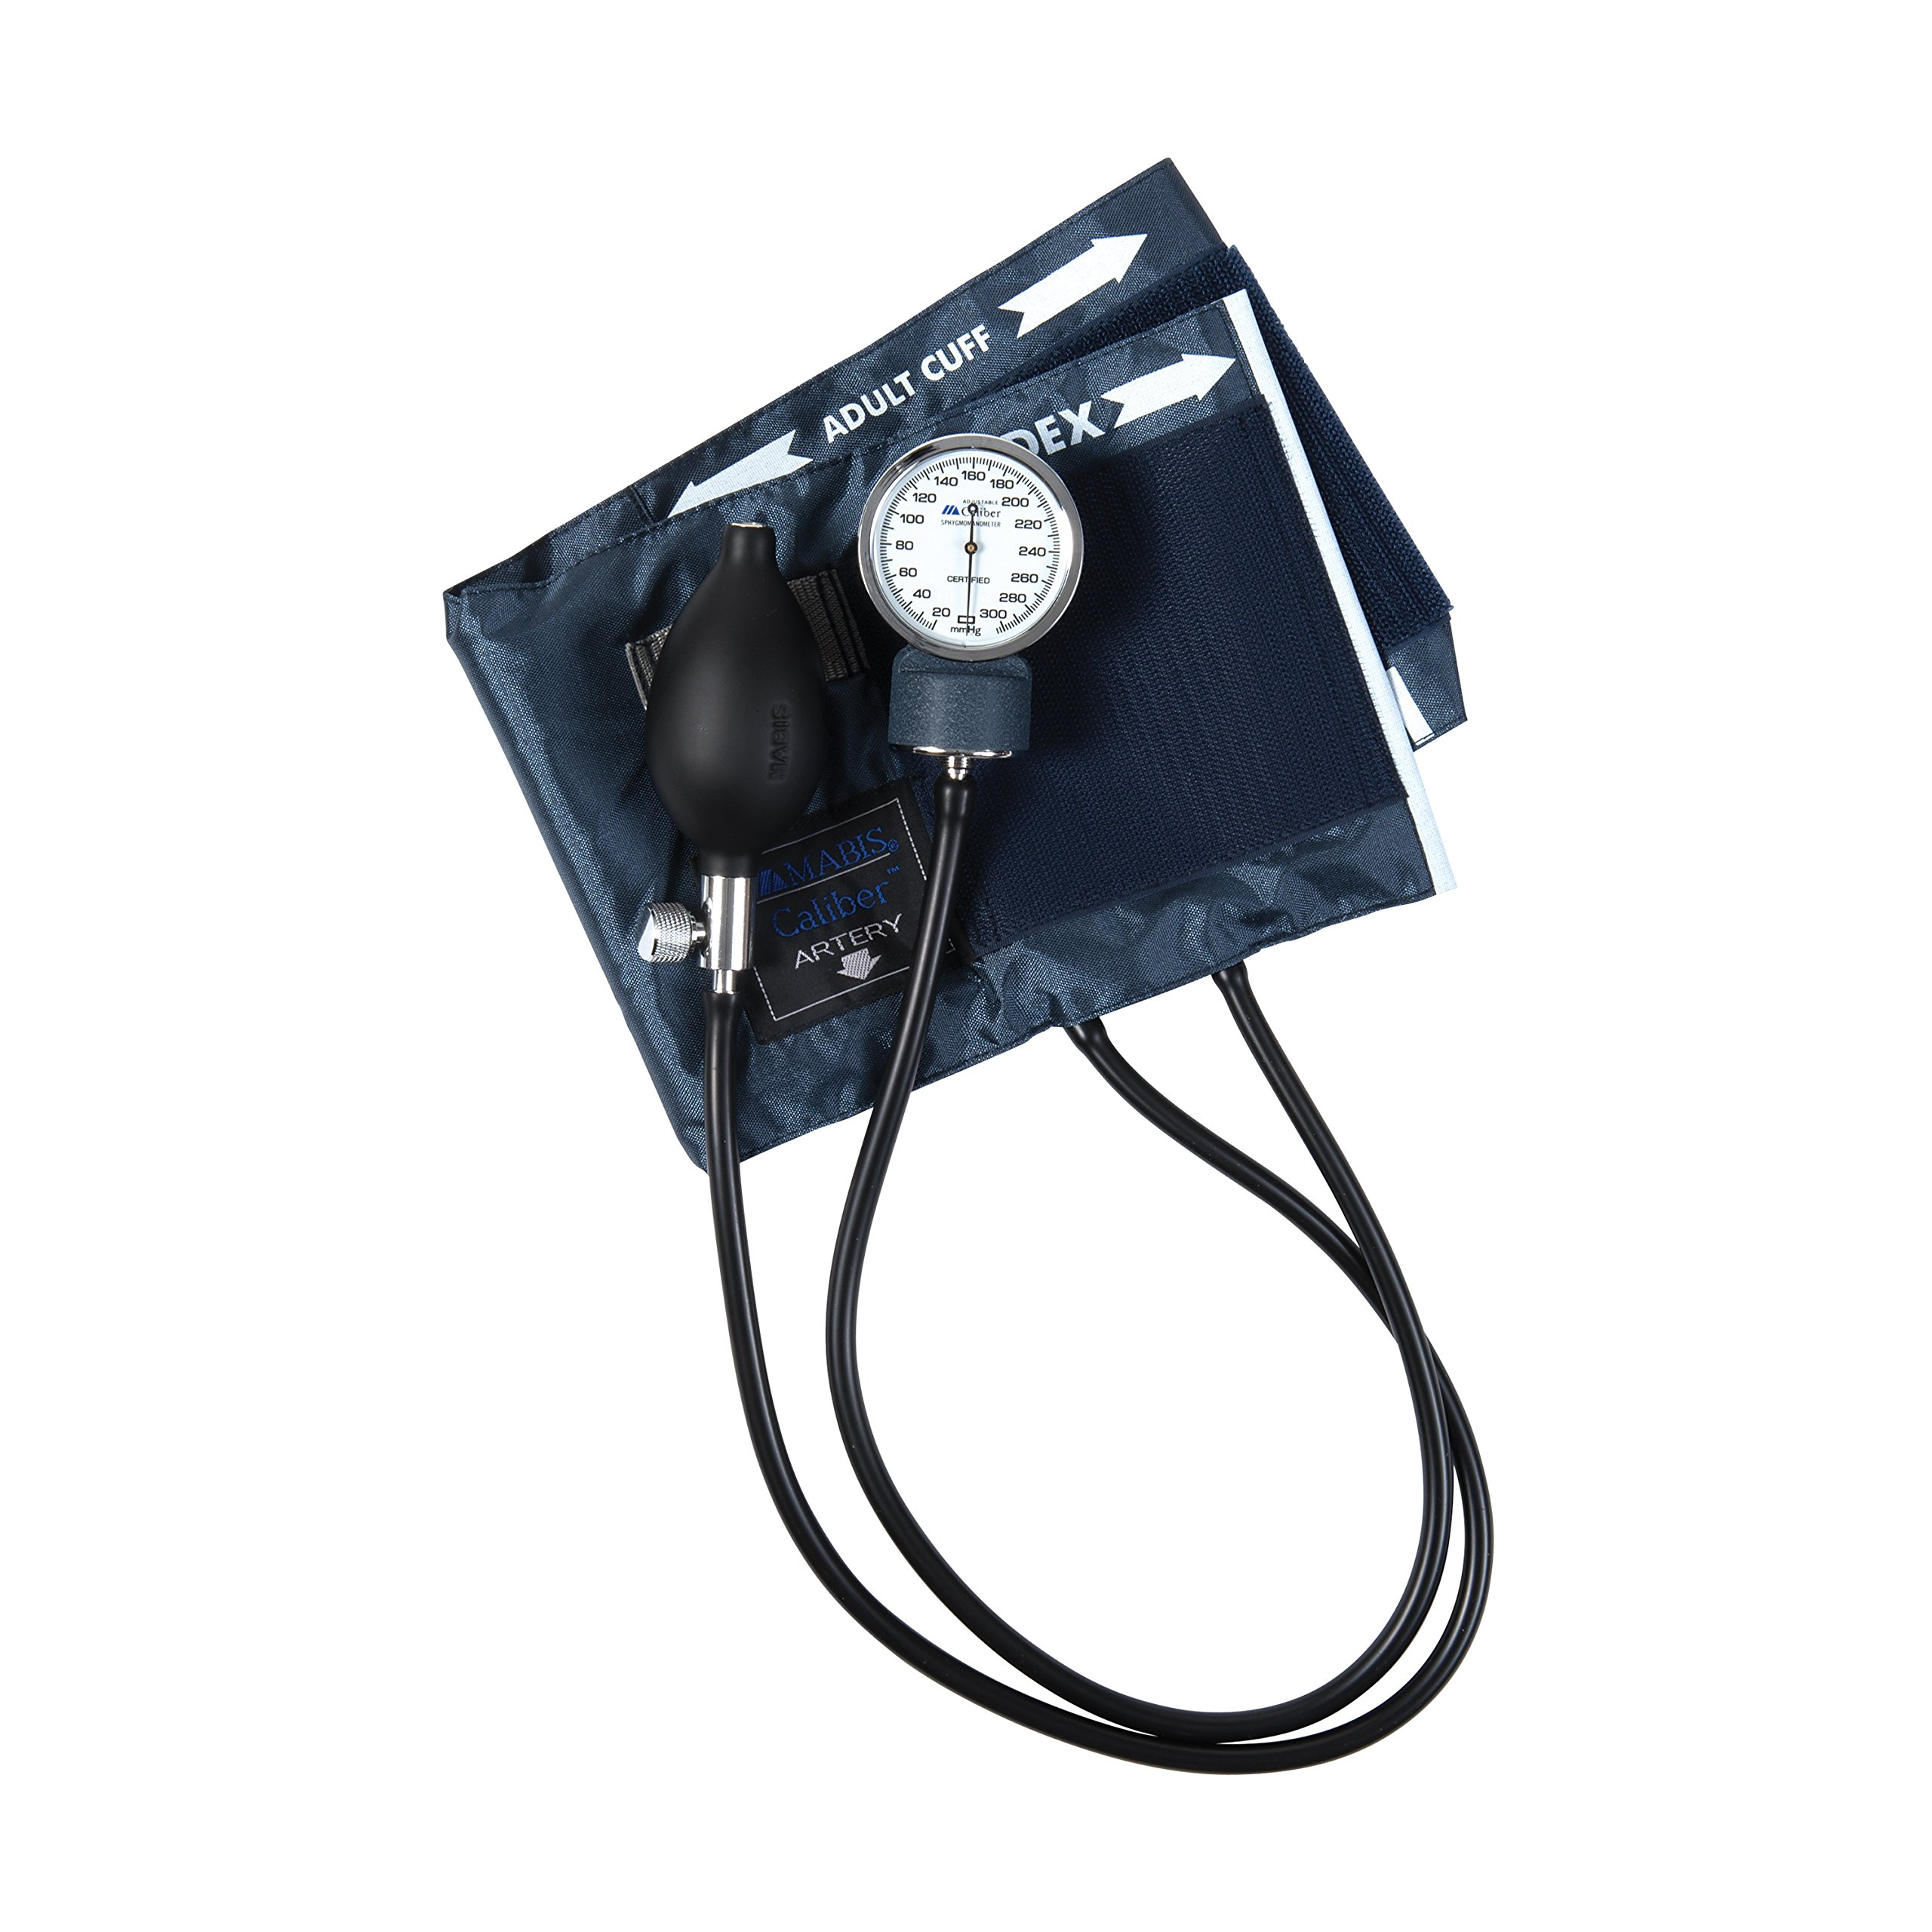 MABIS CALIBER Series Adjustable Aneroid Sphygmomanometer with Mini Screwdriver, Calibrated Blue Nylon Cuff and Deluxe Carrying Case, For Professional or Home Use, Adult, Cuff Size 11 to 16.4 Inches, Blue by MABIS DMI Healthcare (Image #5)